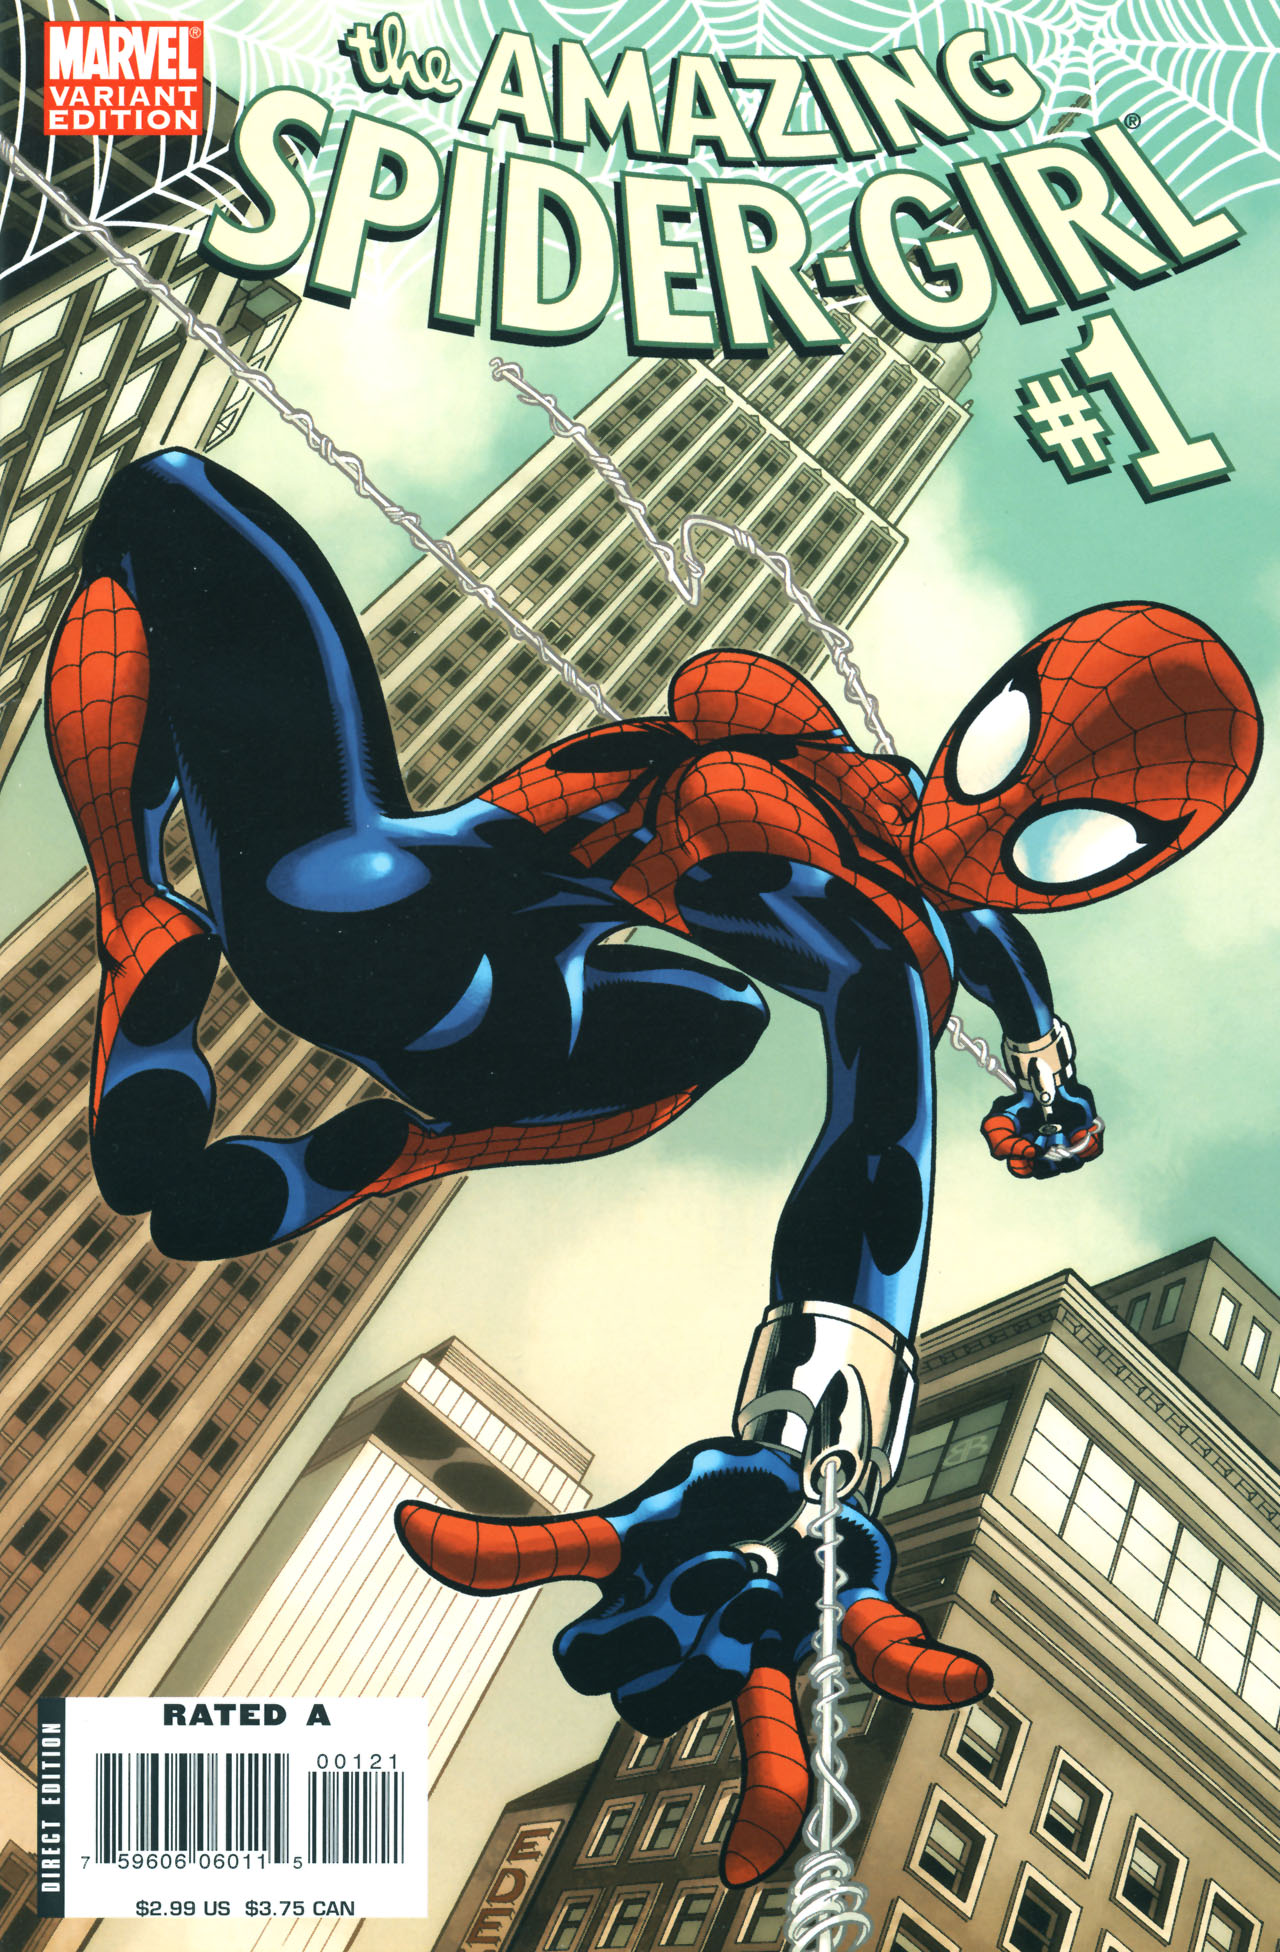 Read online Amazing Spider-Girl comic -  Issue #1 - 2